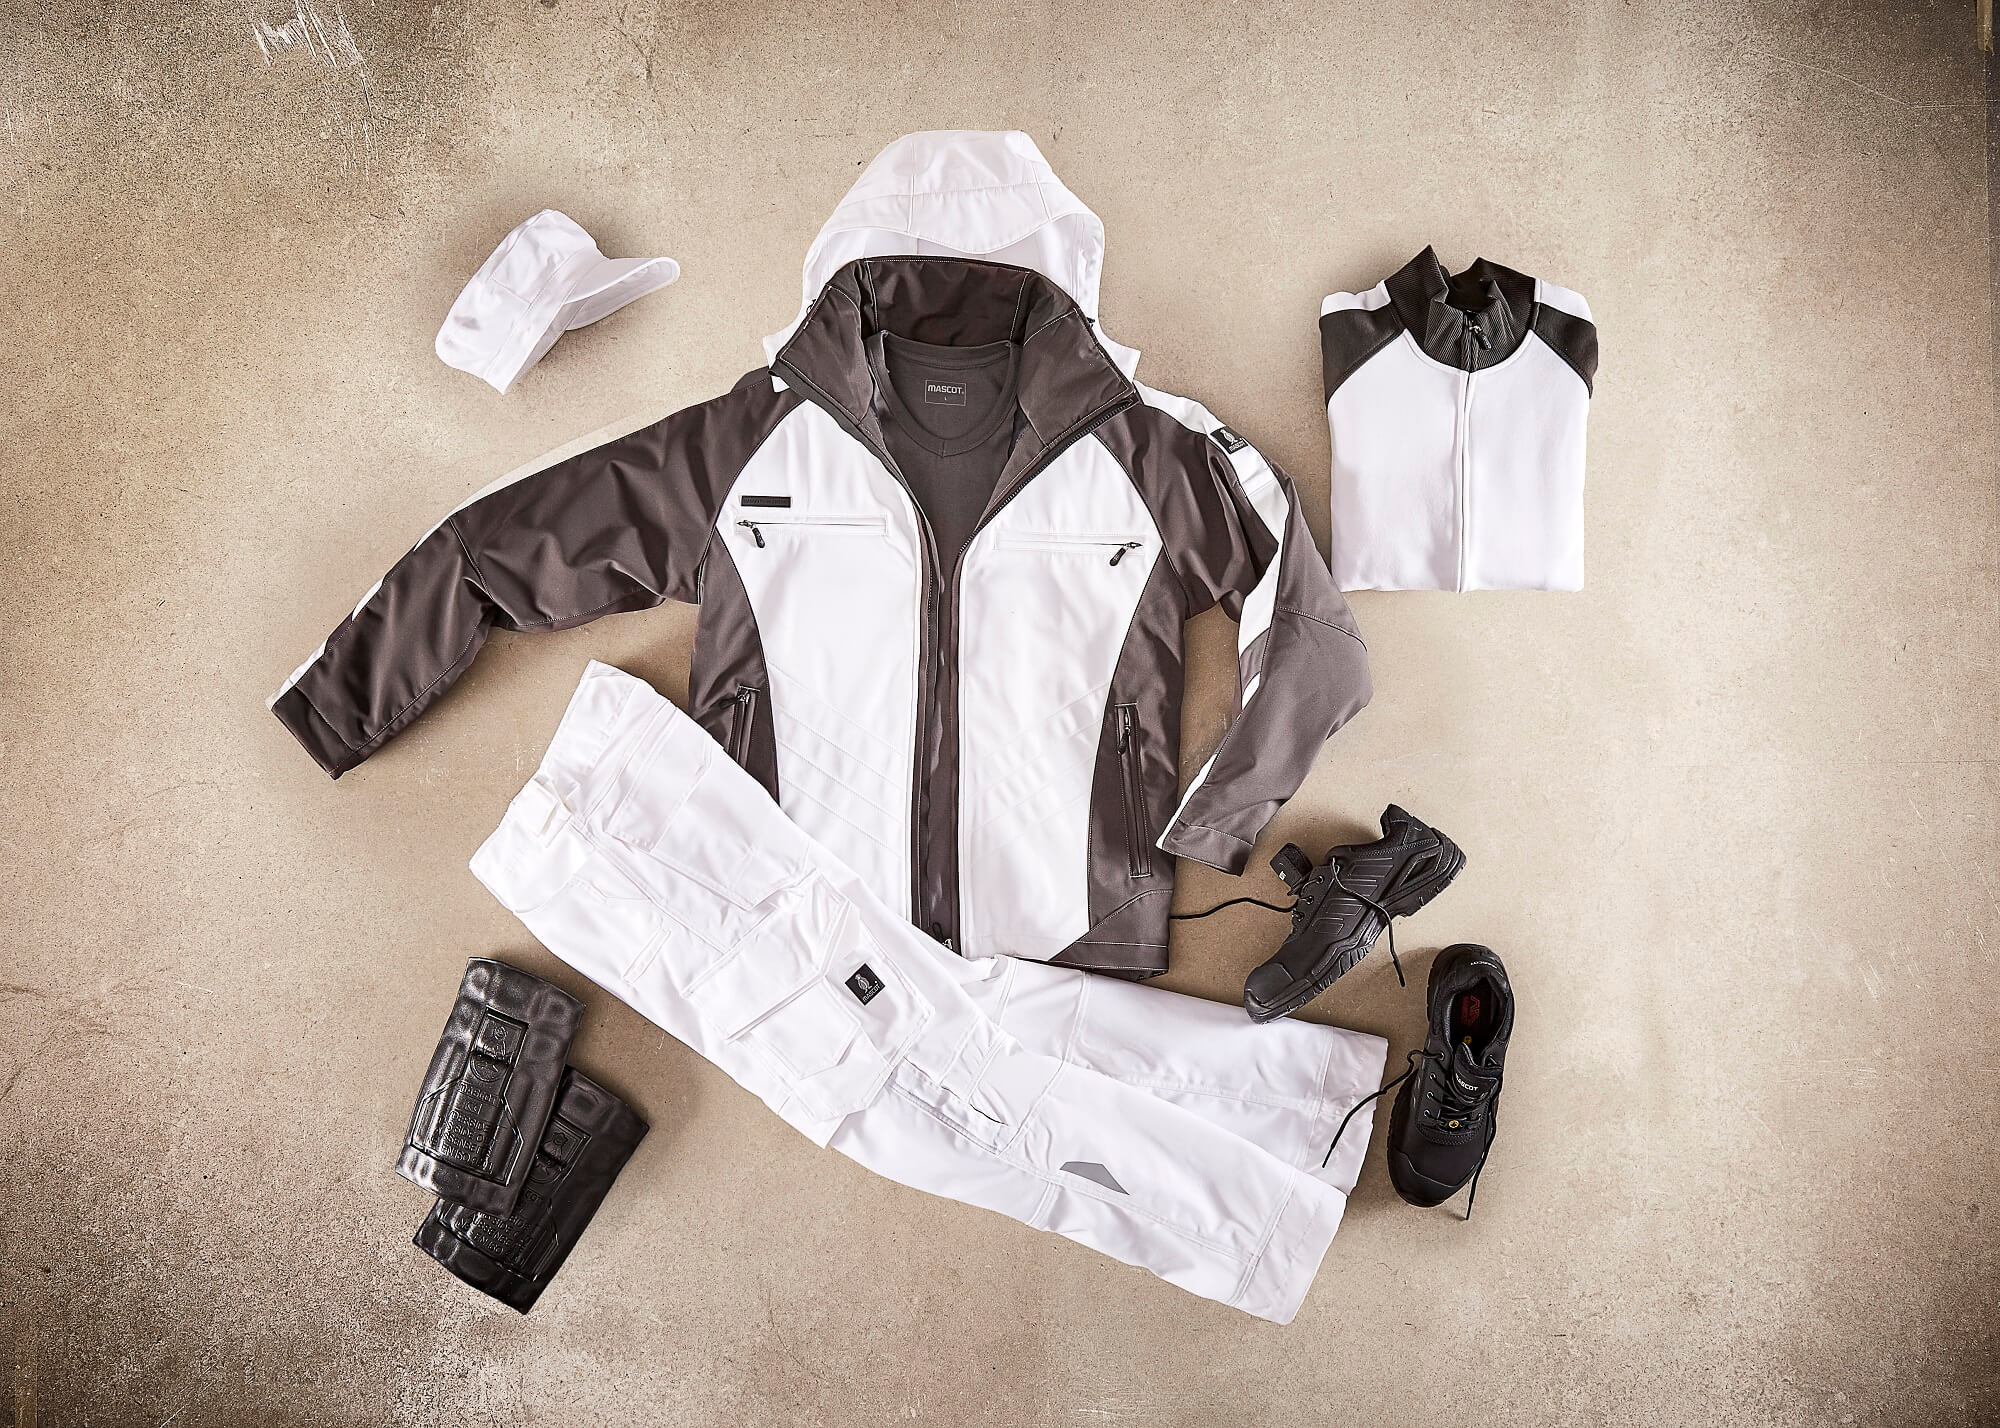 Collage - Veste grand froid, Pantalon, Sweat & Chaussures de sécurité - Blanc